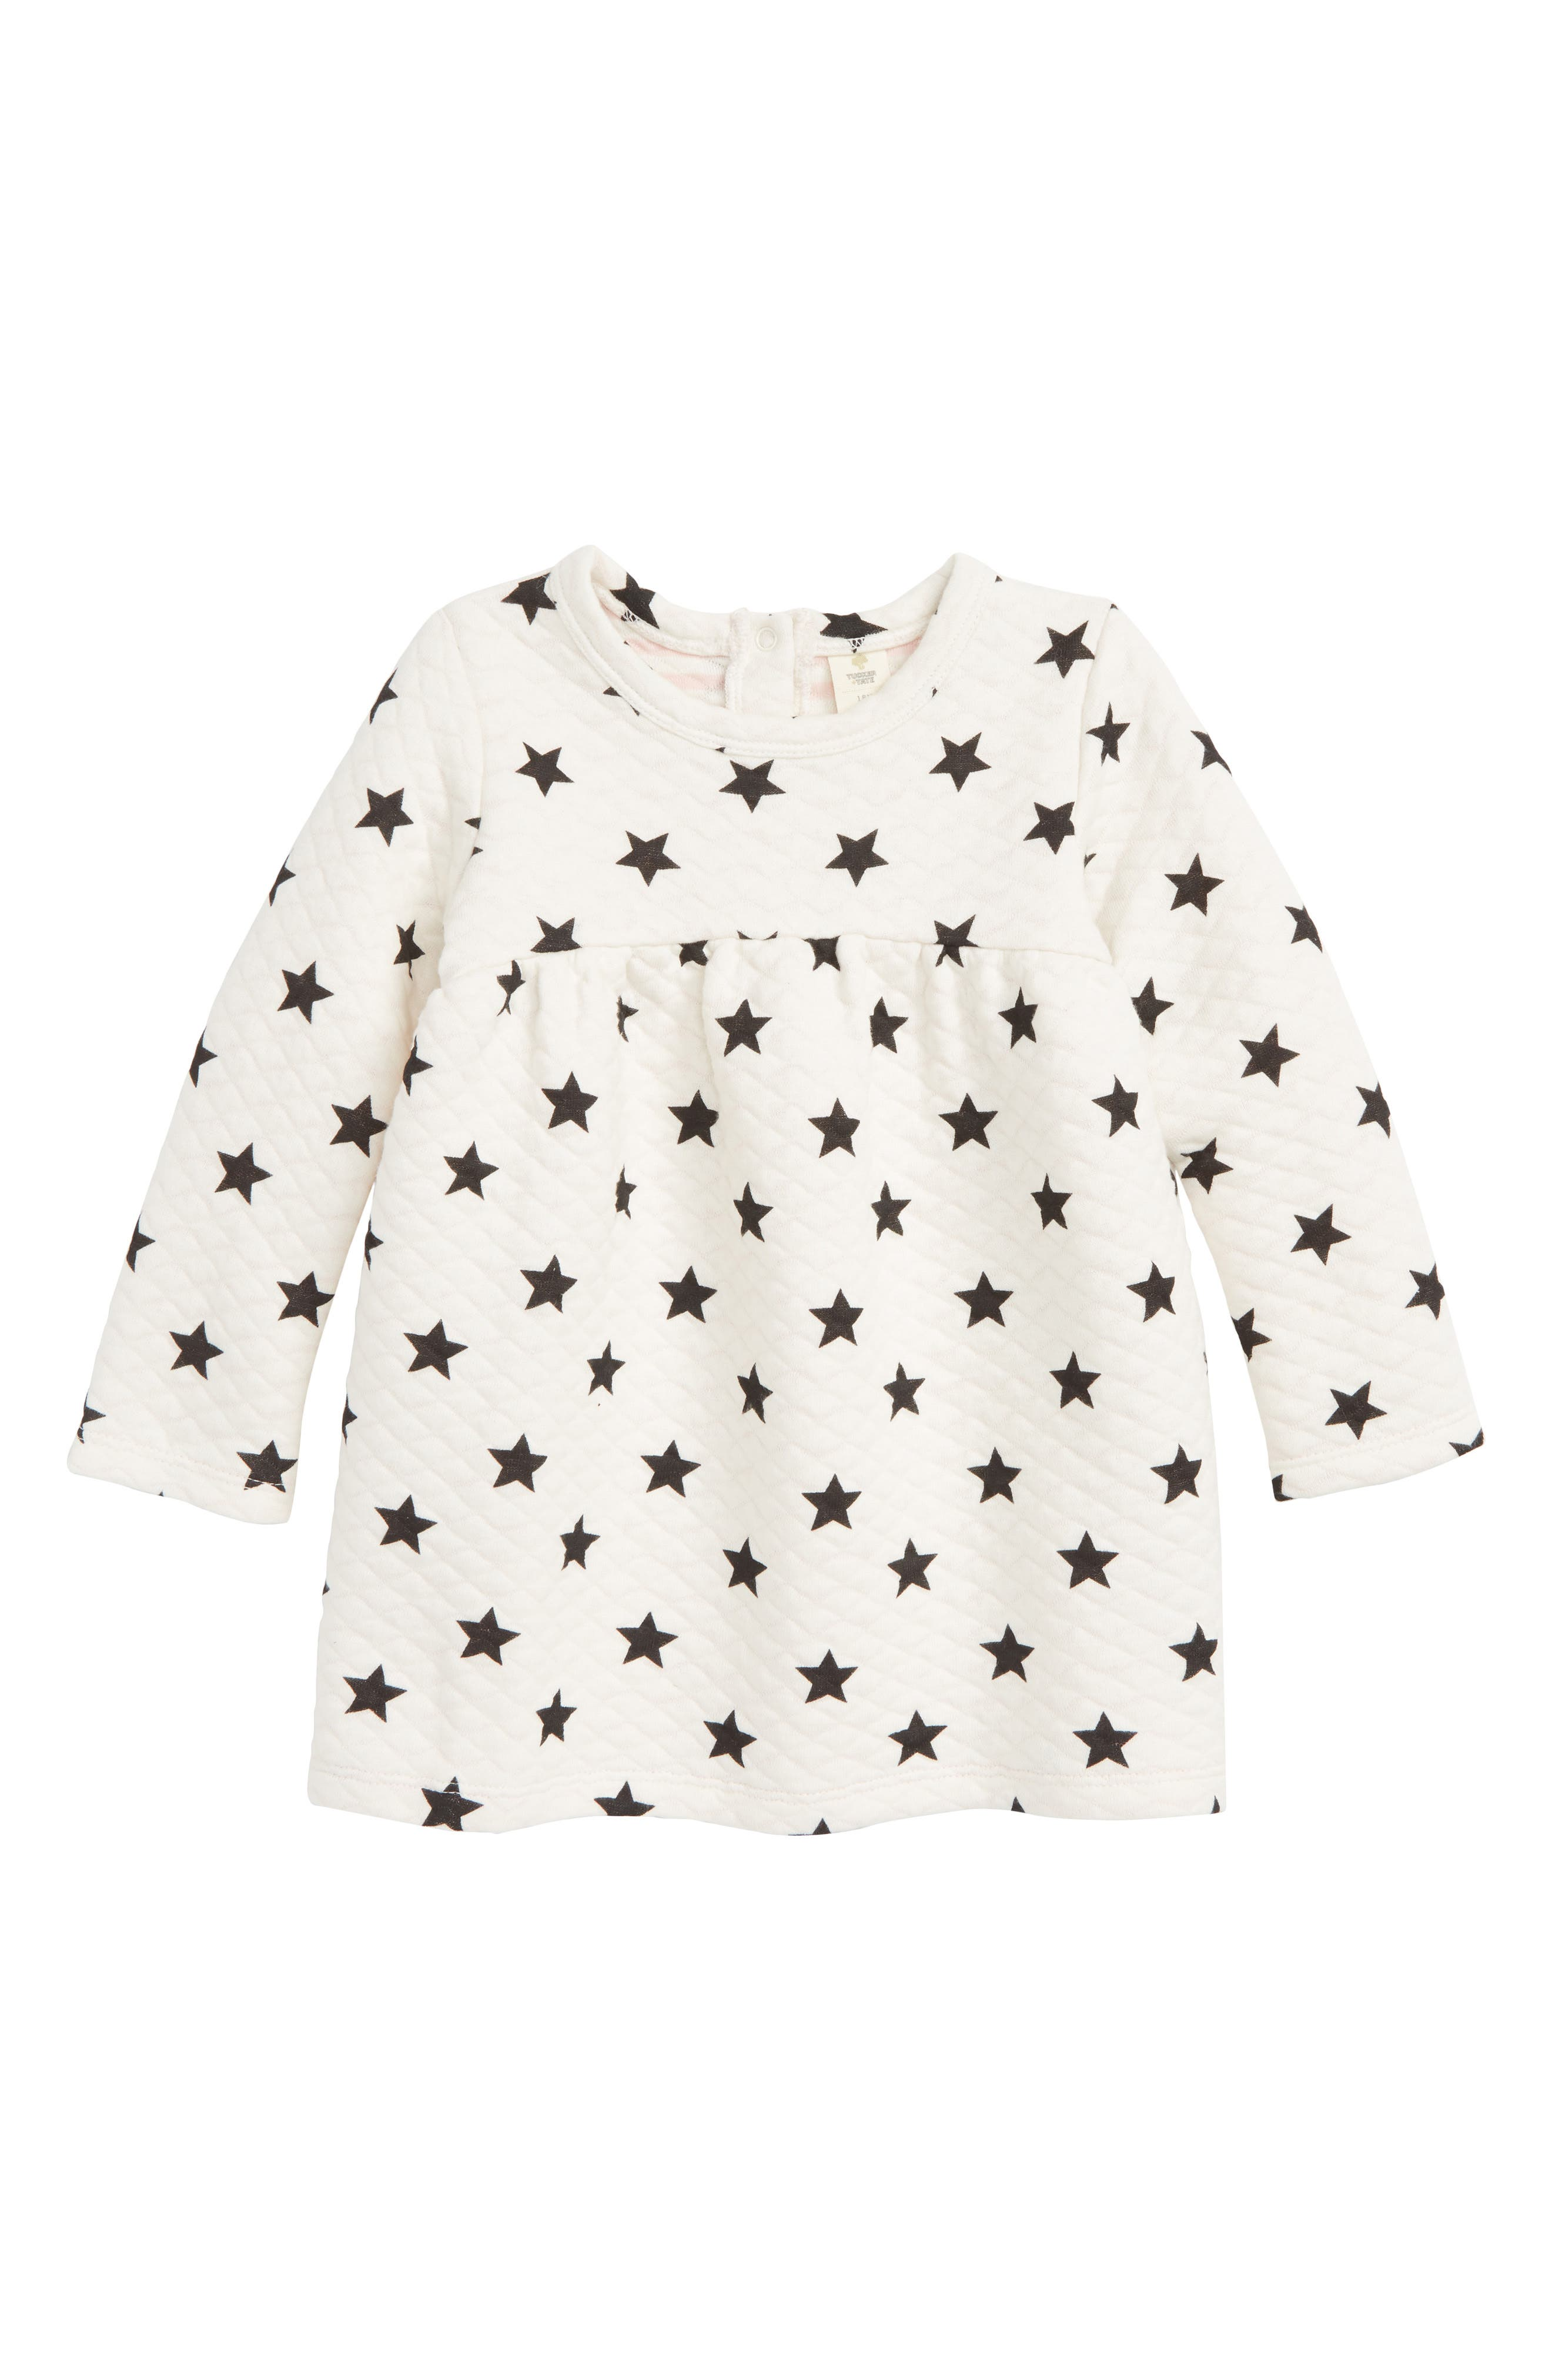 Star Quilted Dress,                         Main,                         color, IVORY EGRET STARS